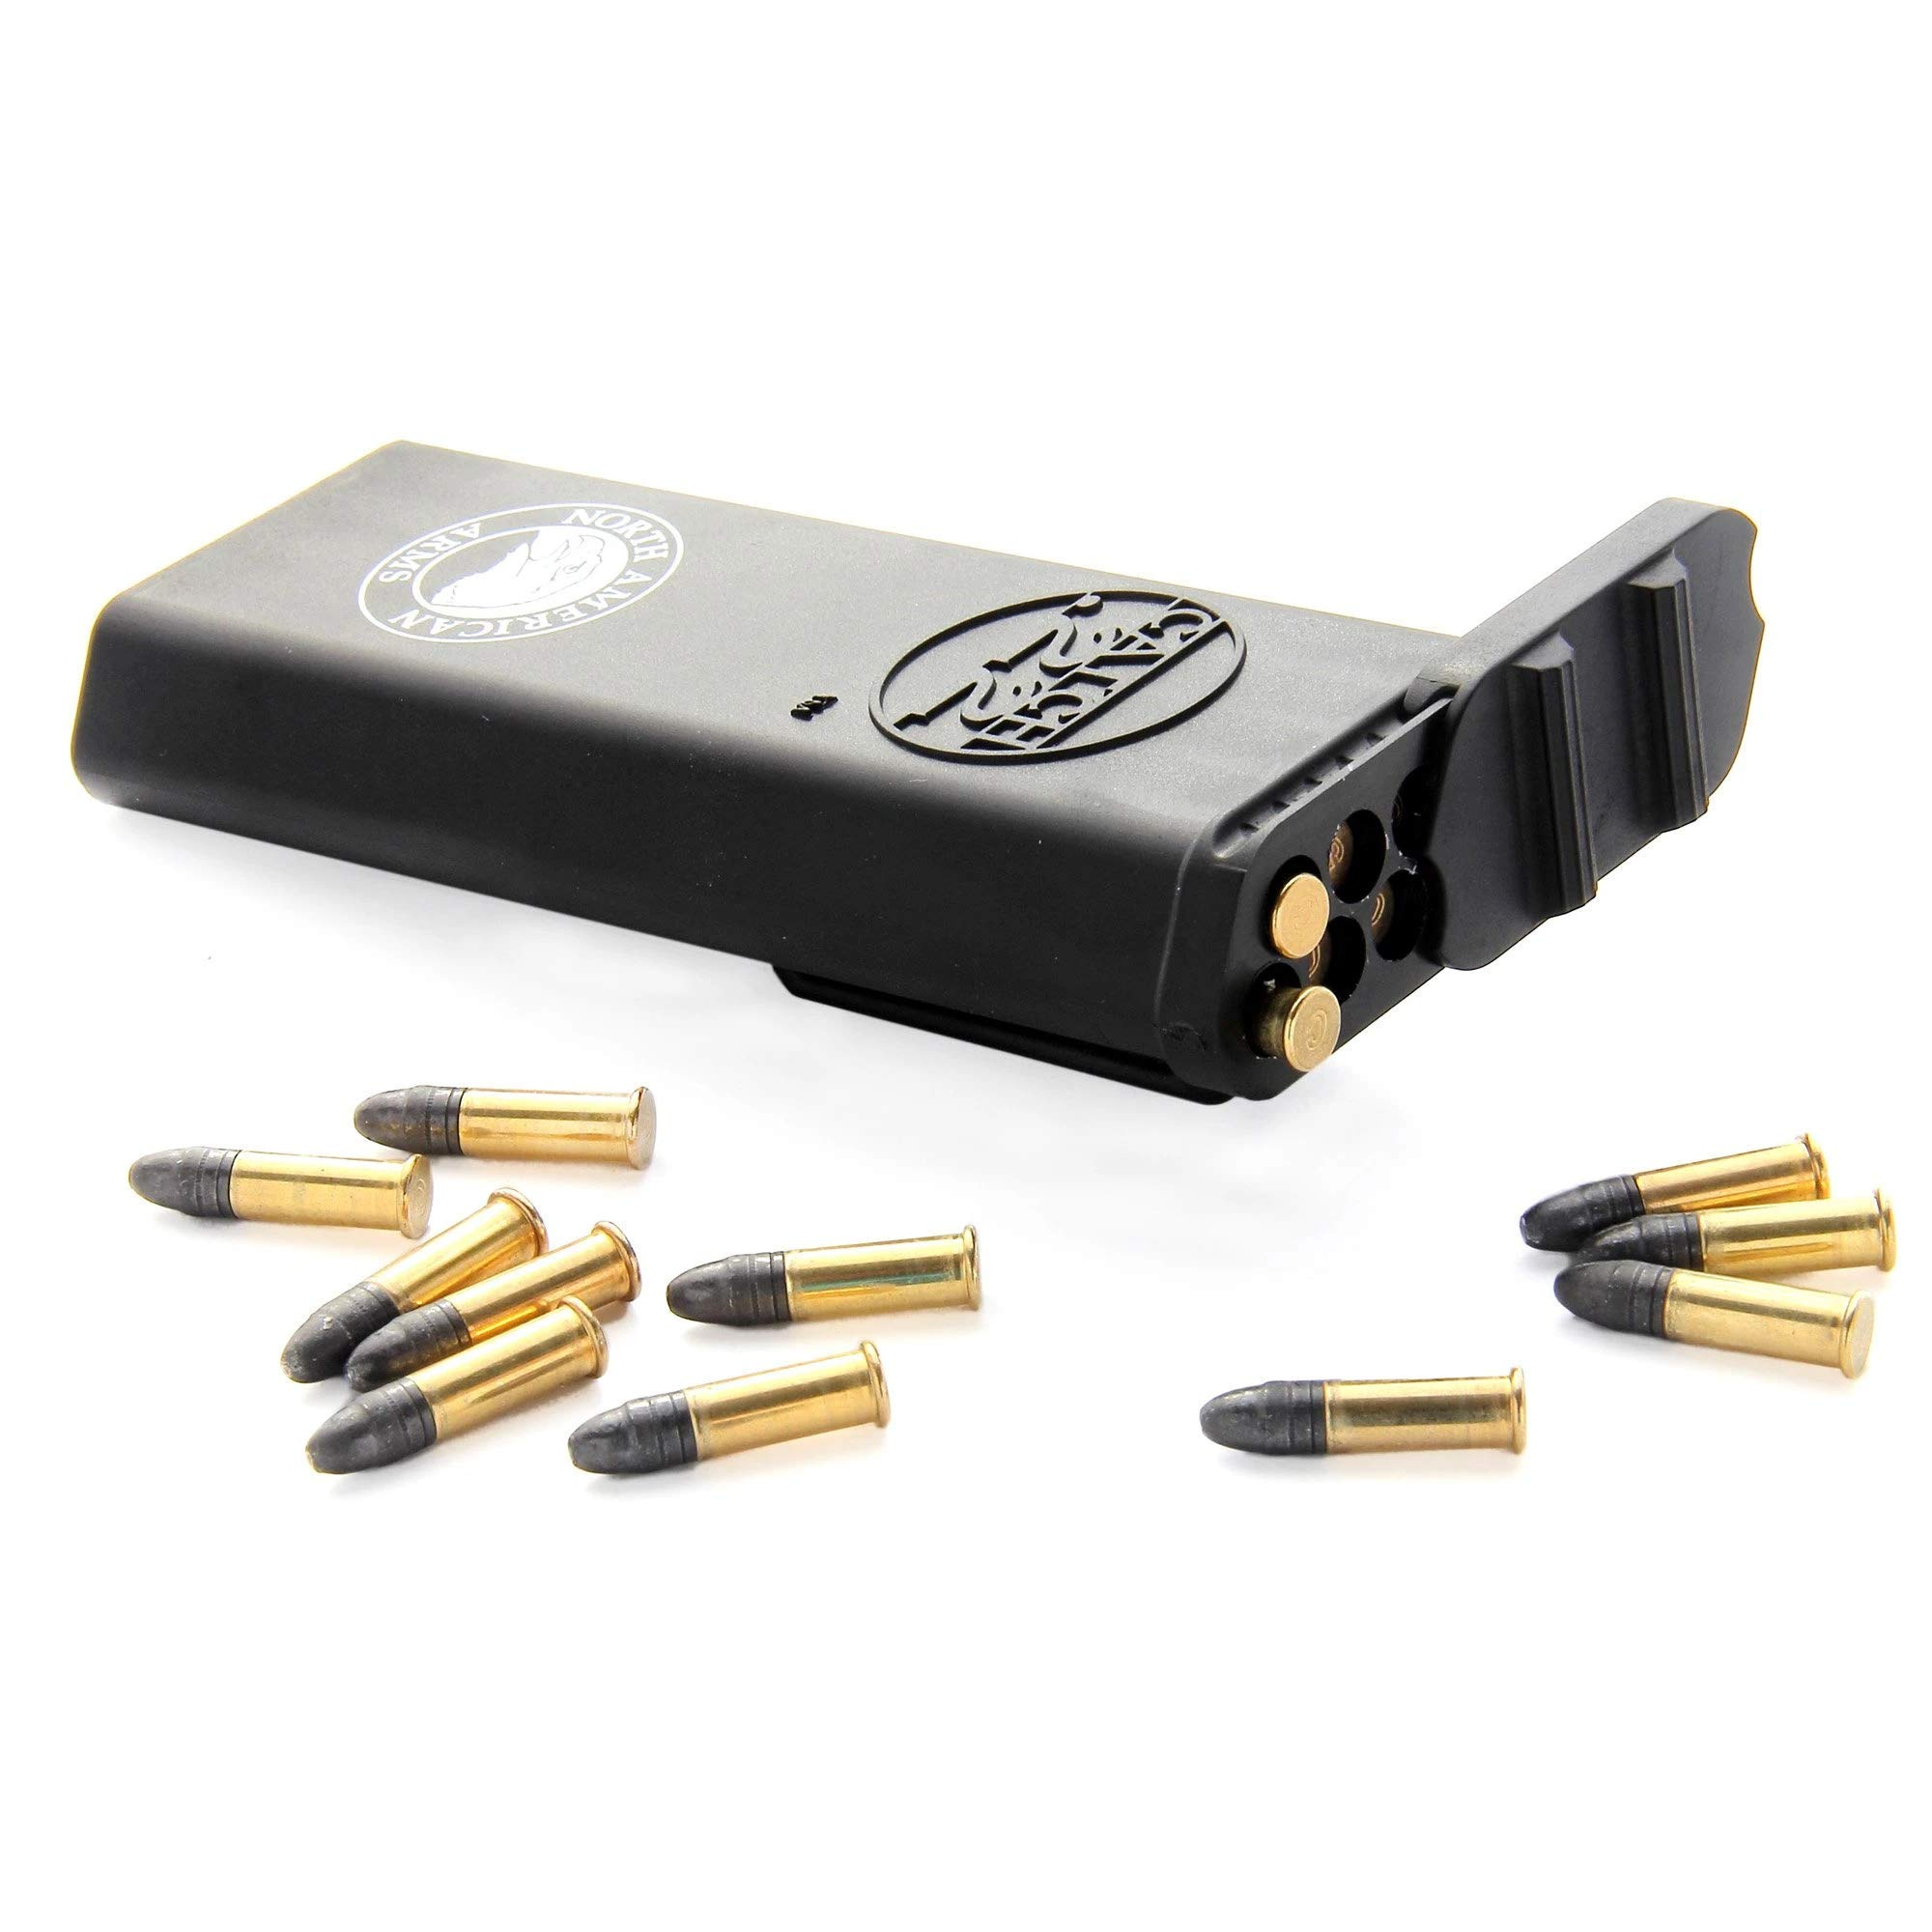 Catch 22 Ammo Carrier, Belt Clip, Holds 50 Rounds of .22 Long Rifle, 70 Rounds of .22 Short or 30 Rounds of .22 Magnum